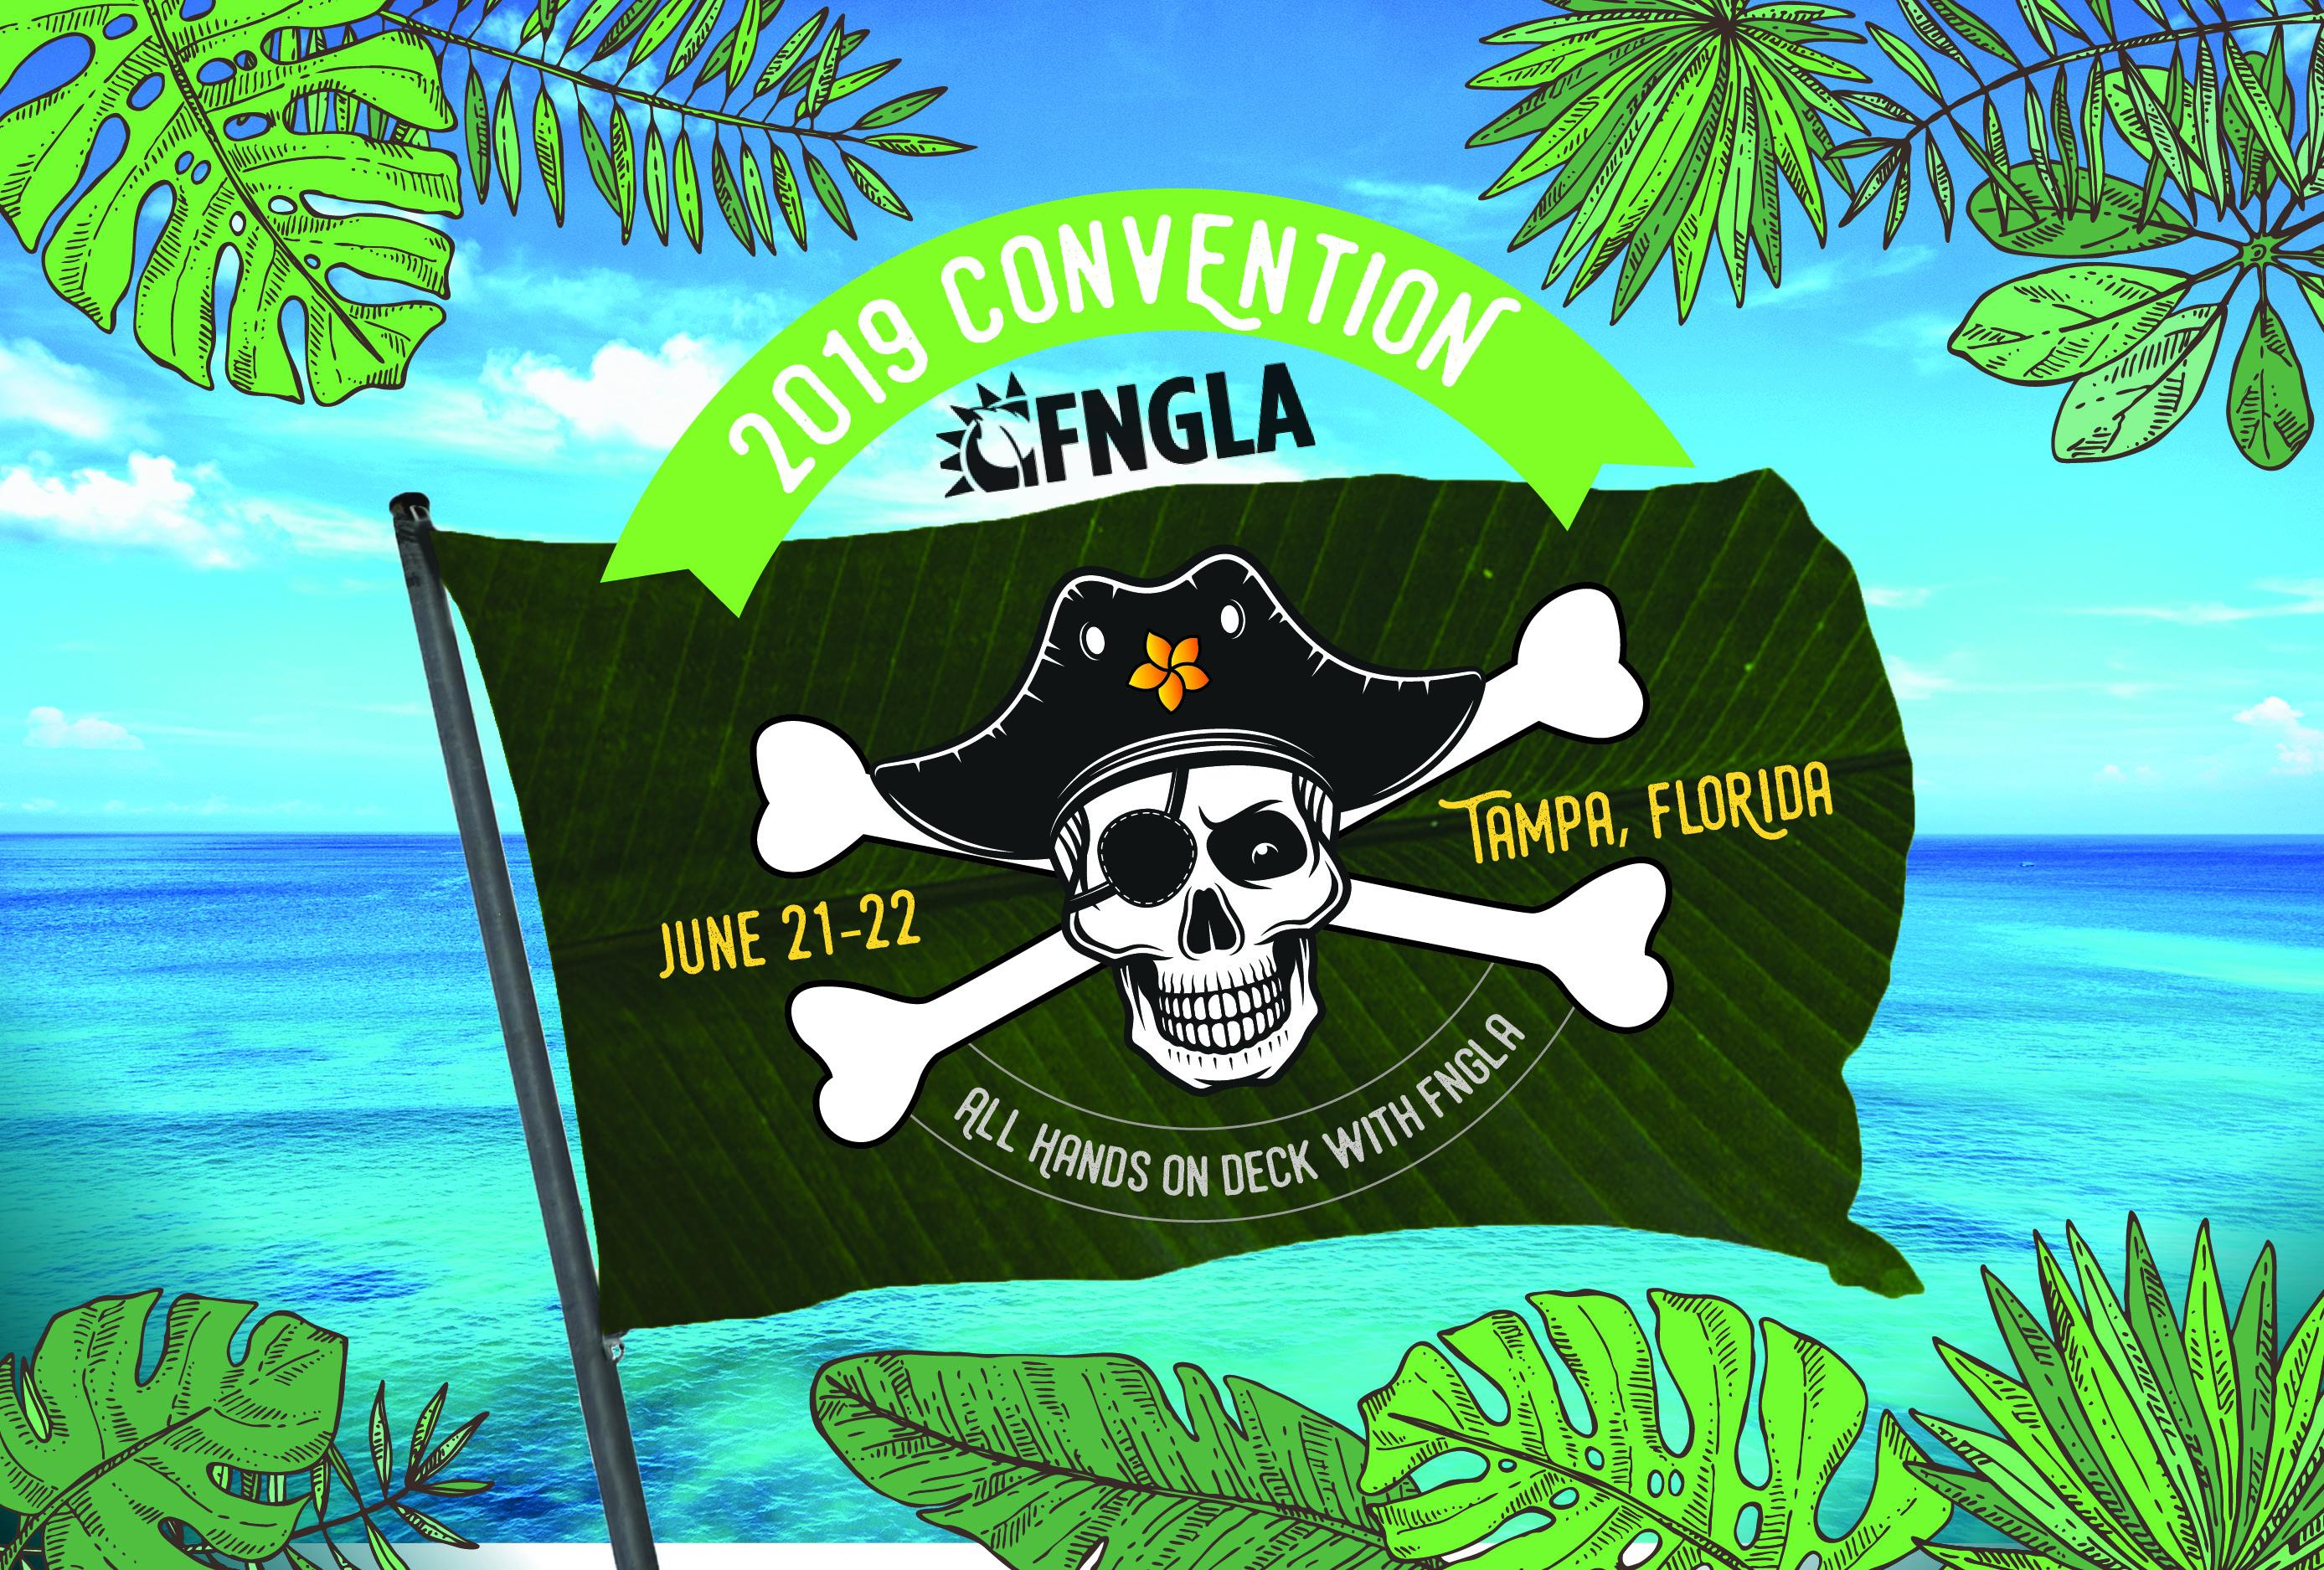 FNGLA 2019 Convention_Final